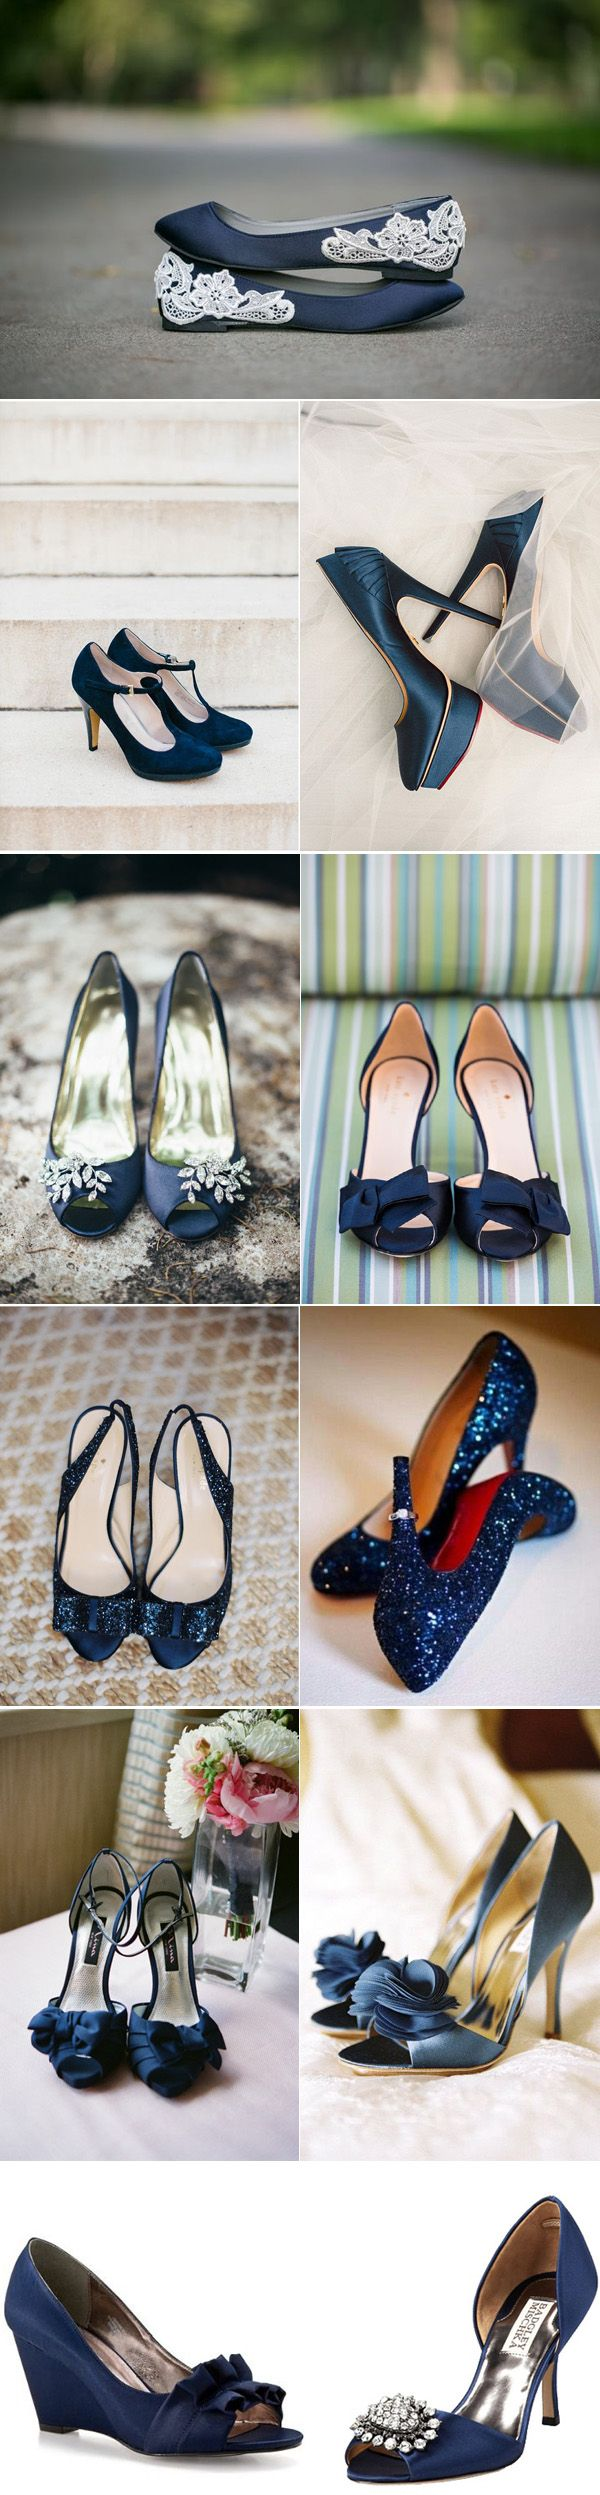 45 Chic Blue Wedding Shoes For Bridal Deerpearlflowers: Navy Dress For Wedding Shoes At Websimilar.org